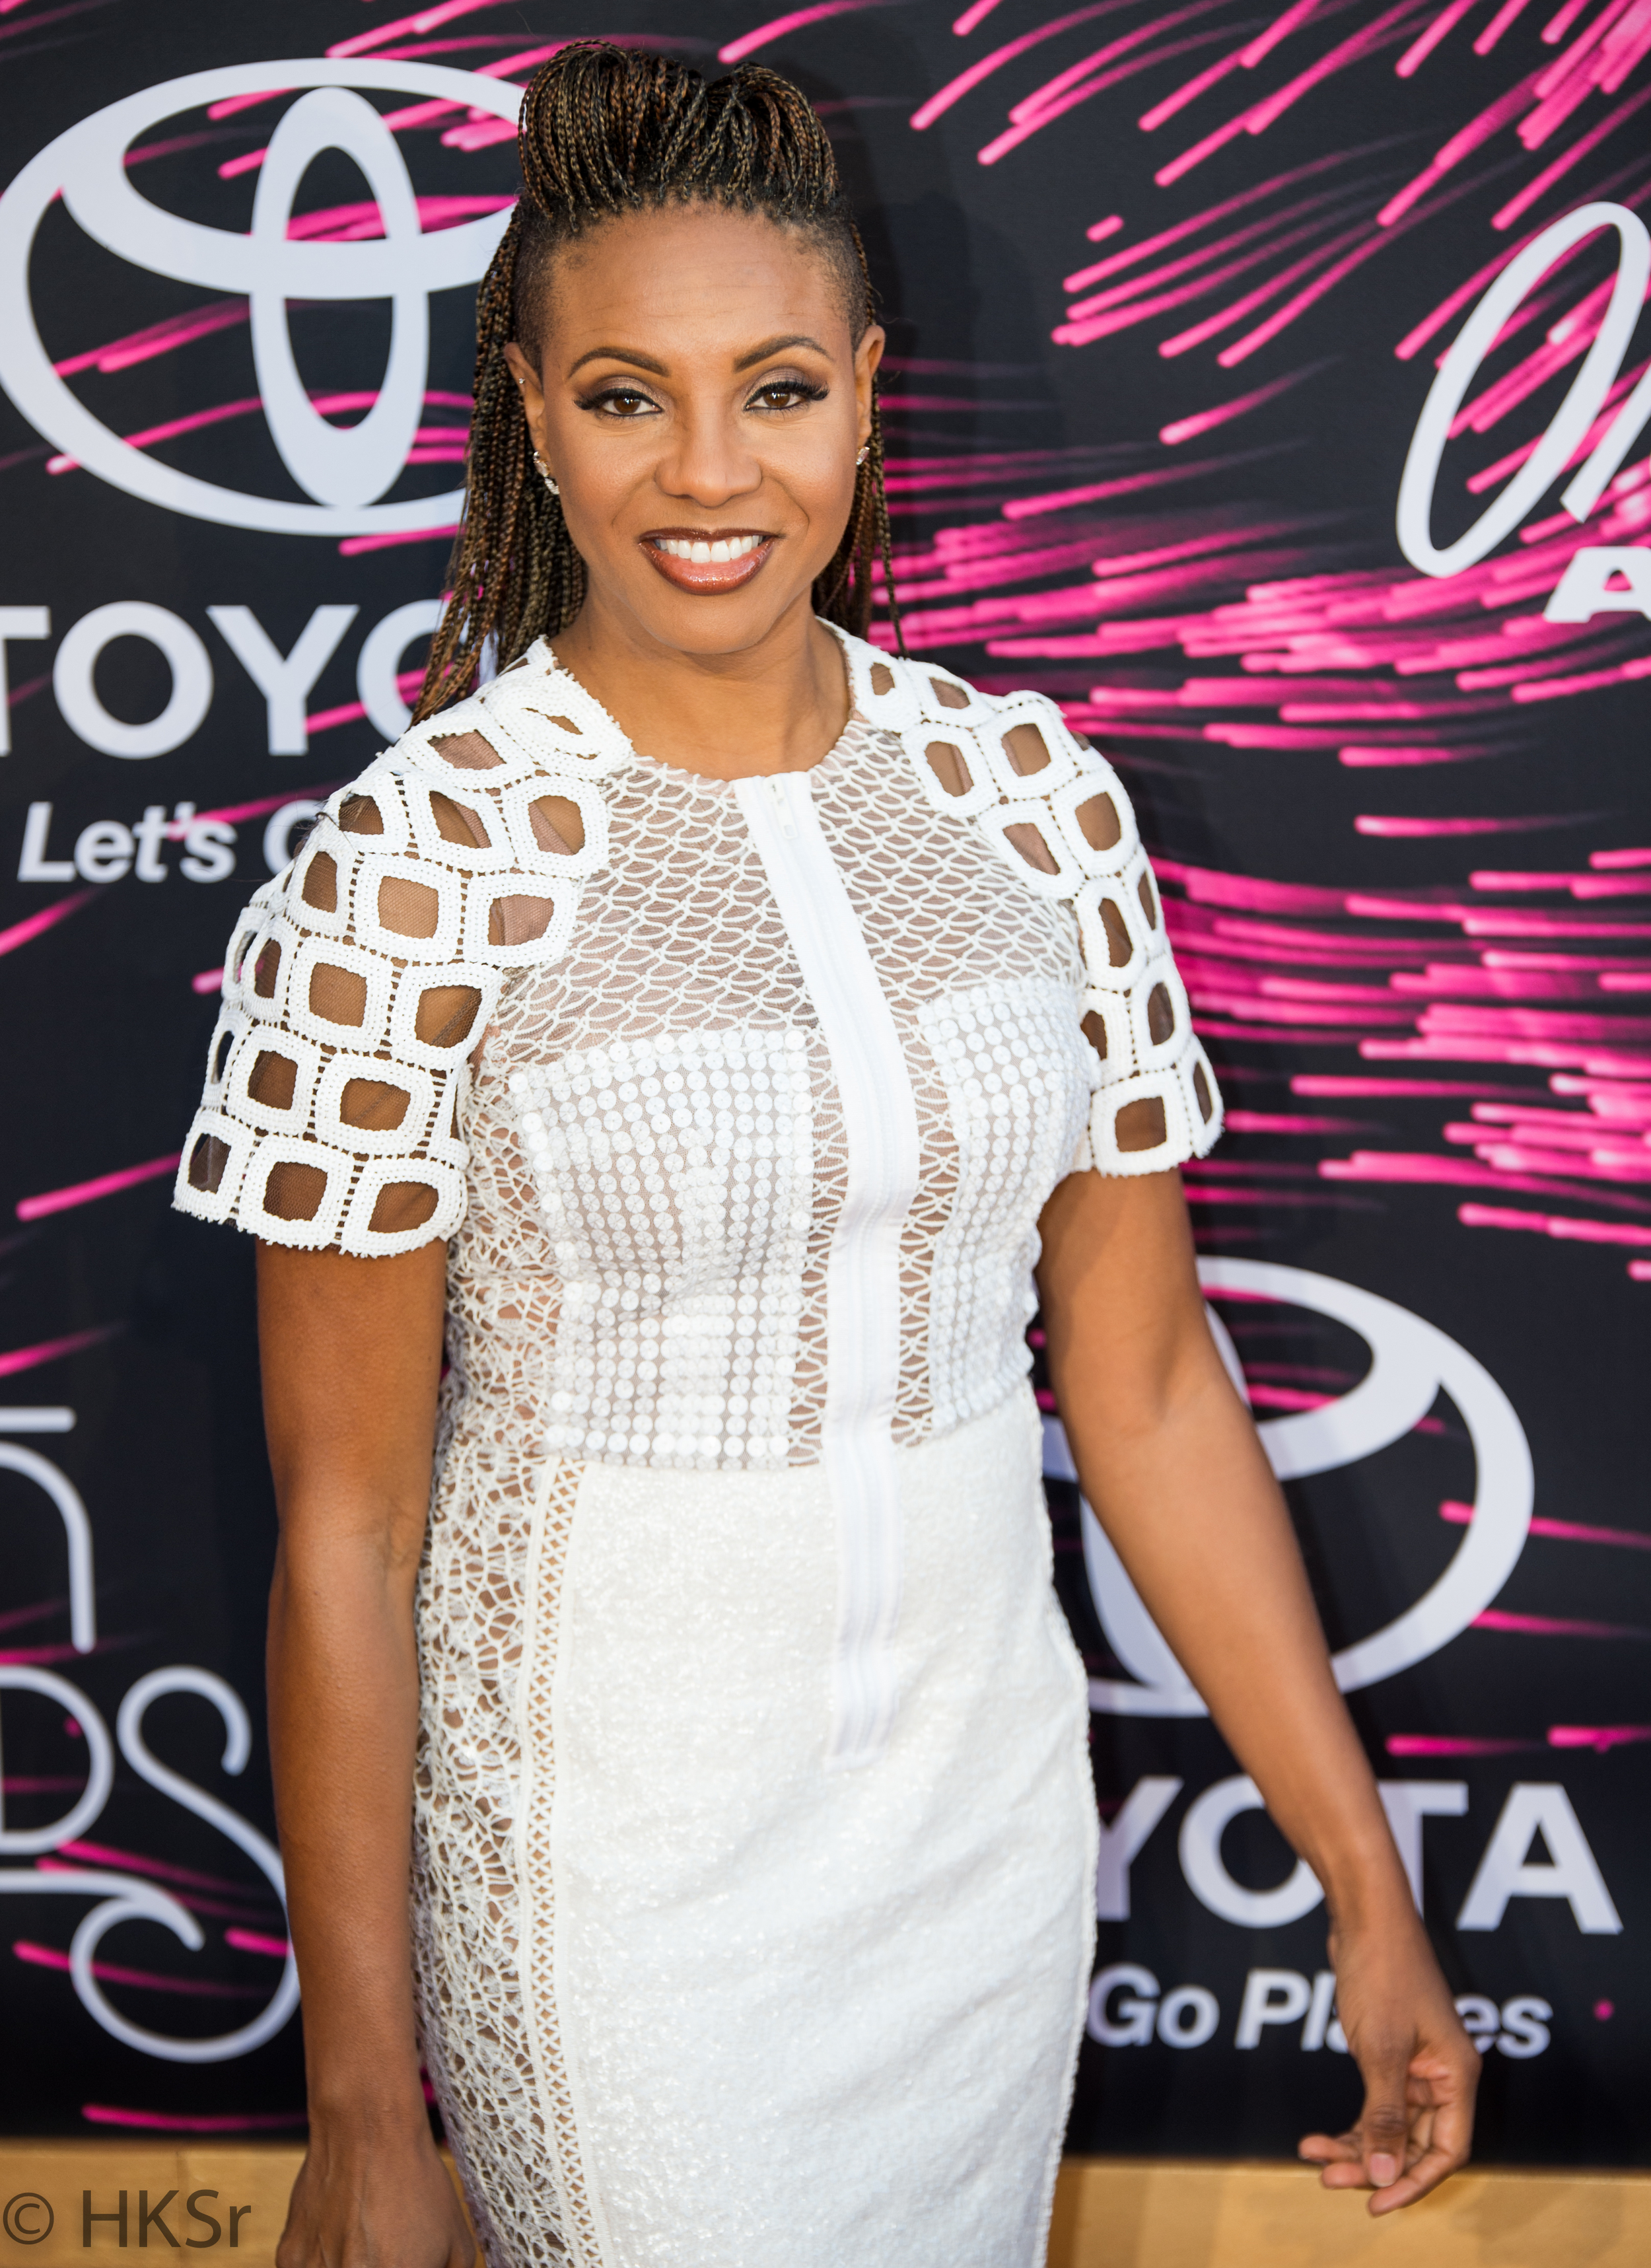 The great Mc Lyte on the red carpet at the Soul Train Awards